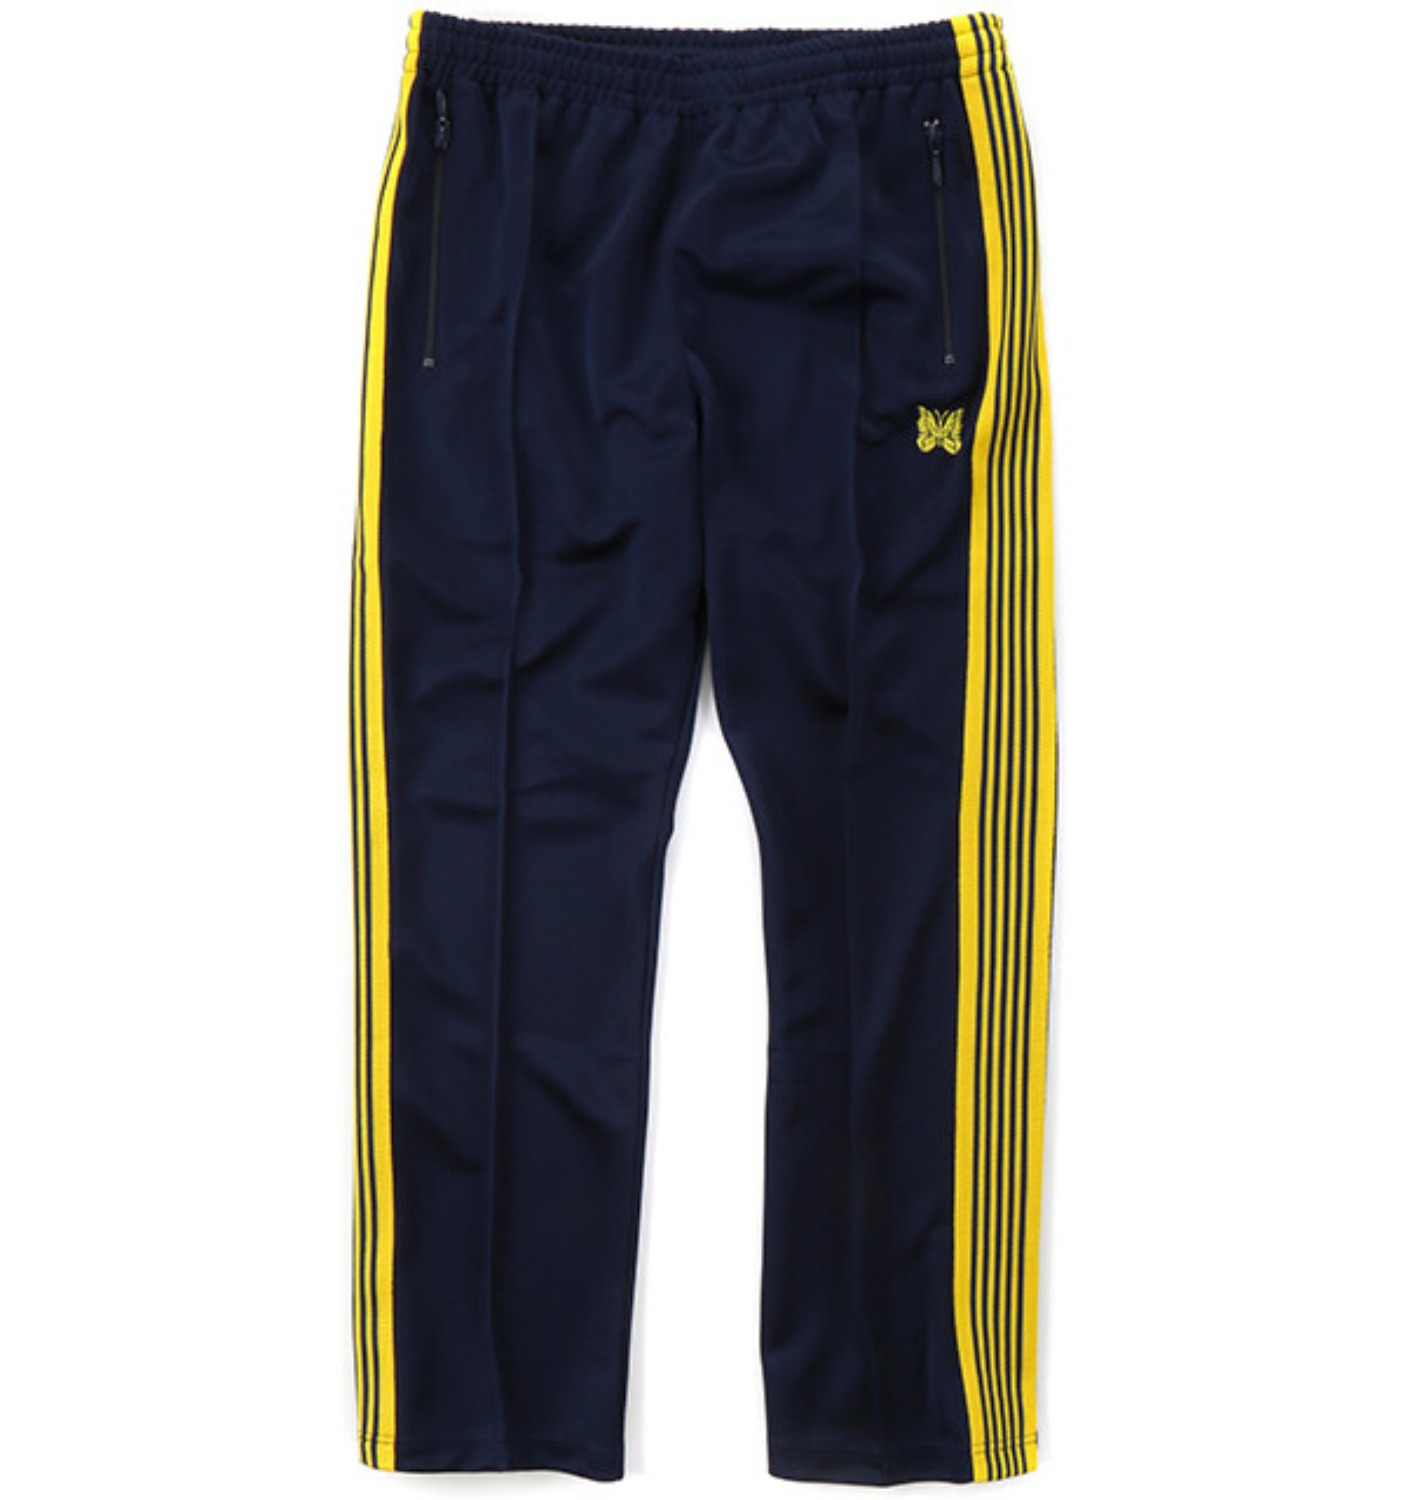 (SCULP EXCLUSIVE)NARROW TRACK PANT DARK NAVY/YELLOW